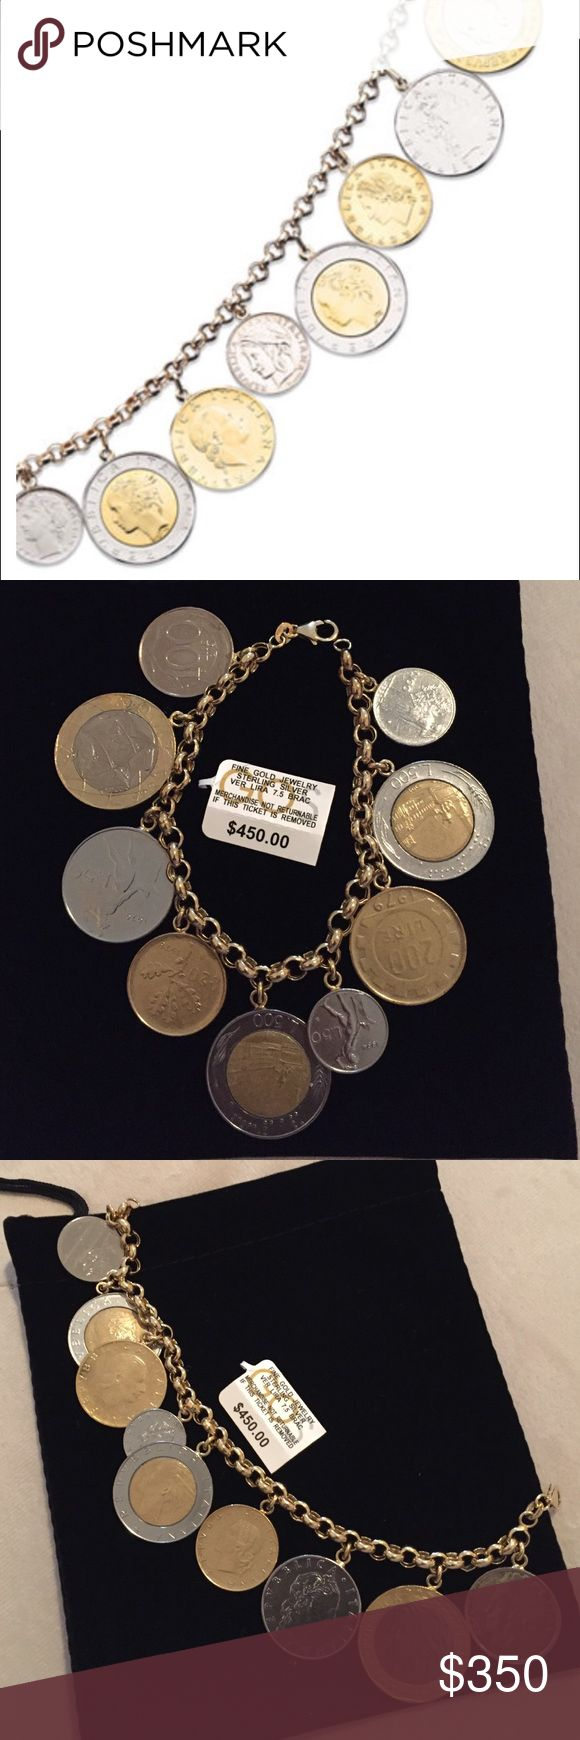 Coin Charm Bracelet This striking bracelet features an eclectic mix of real Italian Lira coins on a elegant 14k gold vermeil over sterling silver rolo bracelet. Approximately length: 7-1/2 inches with black pouch. Preloved and still in good condition. Worn only few times. Bought at Macy's. NO TRADES. Please ask any questions questions before purchasing. Macy's Jewelry Bracelets